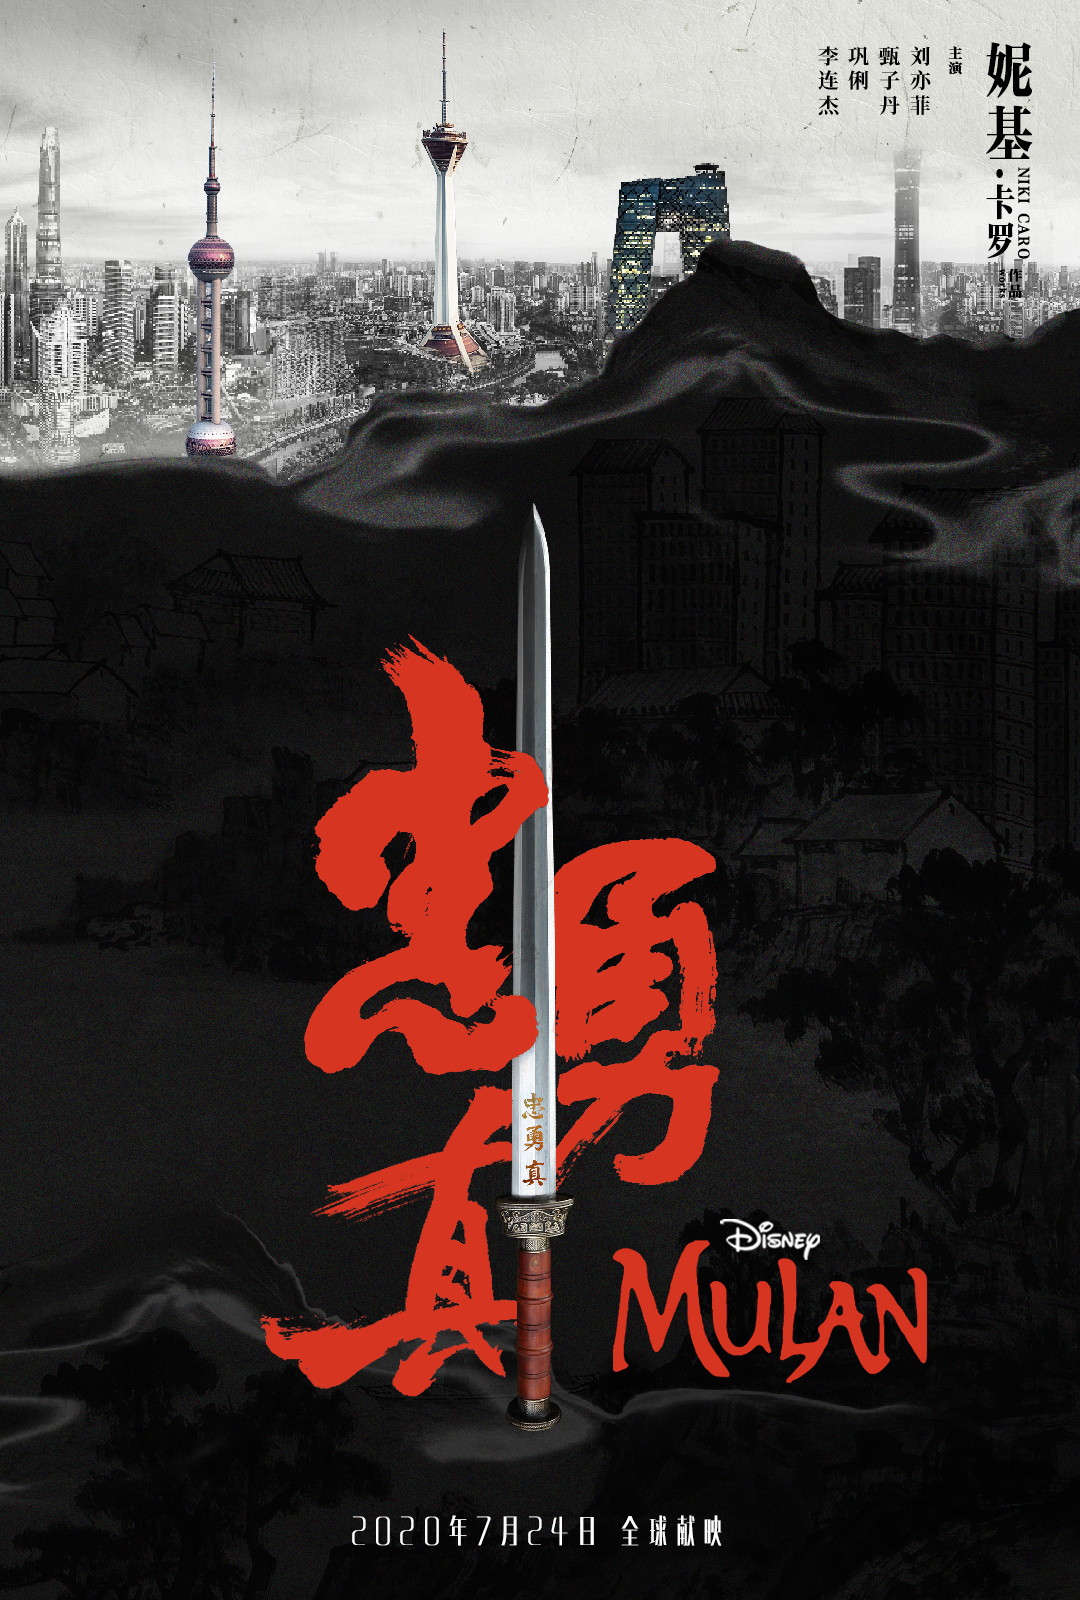 6P Mulan - Chinese Font Design for Movie Posters